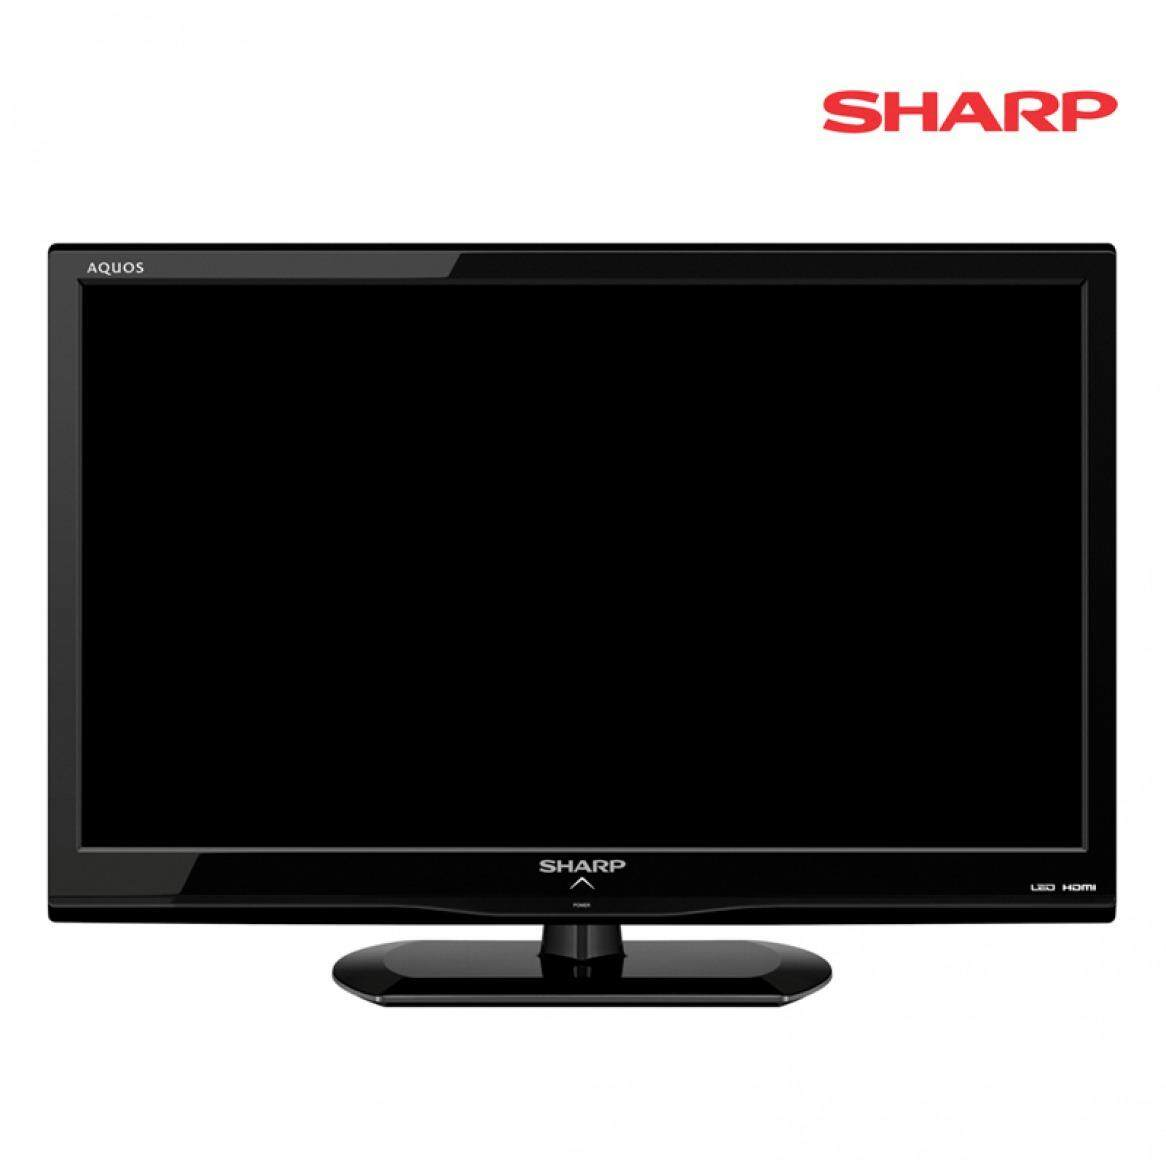 LED TV SHARPTV 24\ รุ่น LC24LE150MUSB รับประกัน1ปี